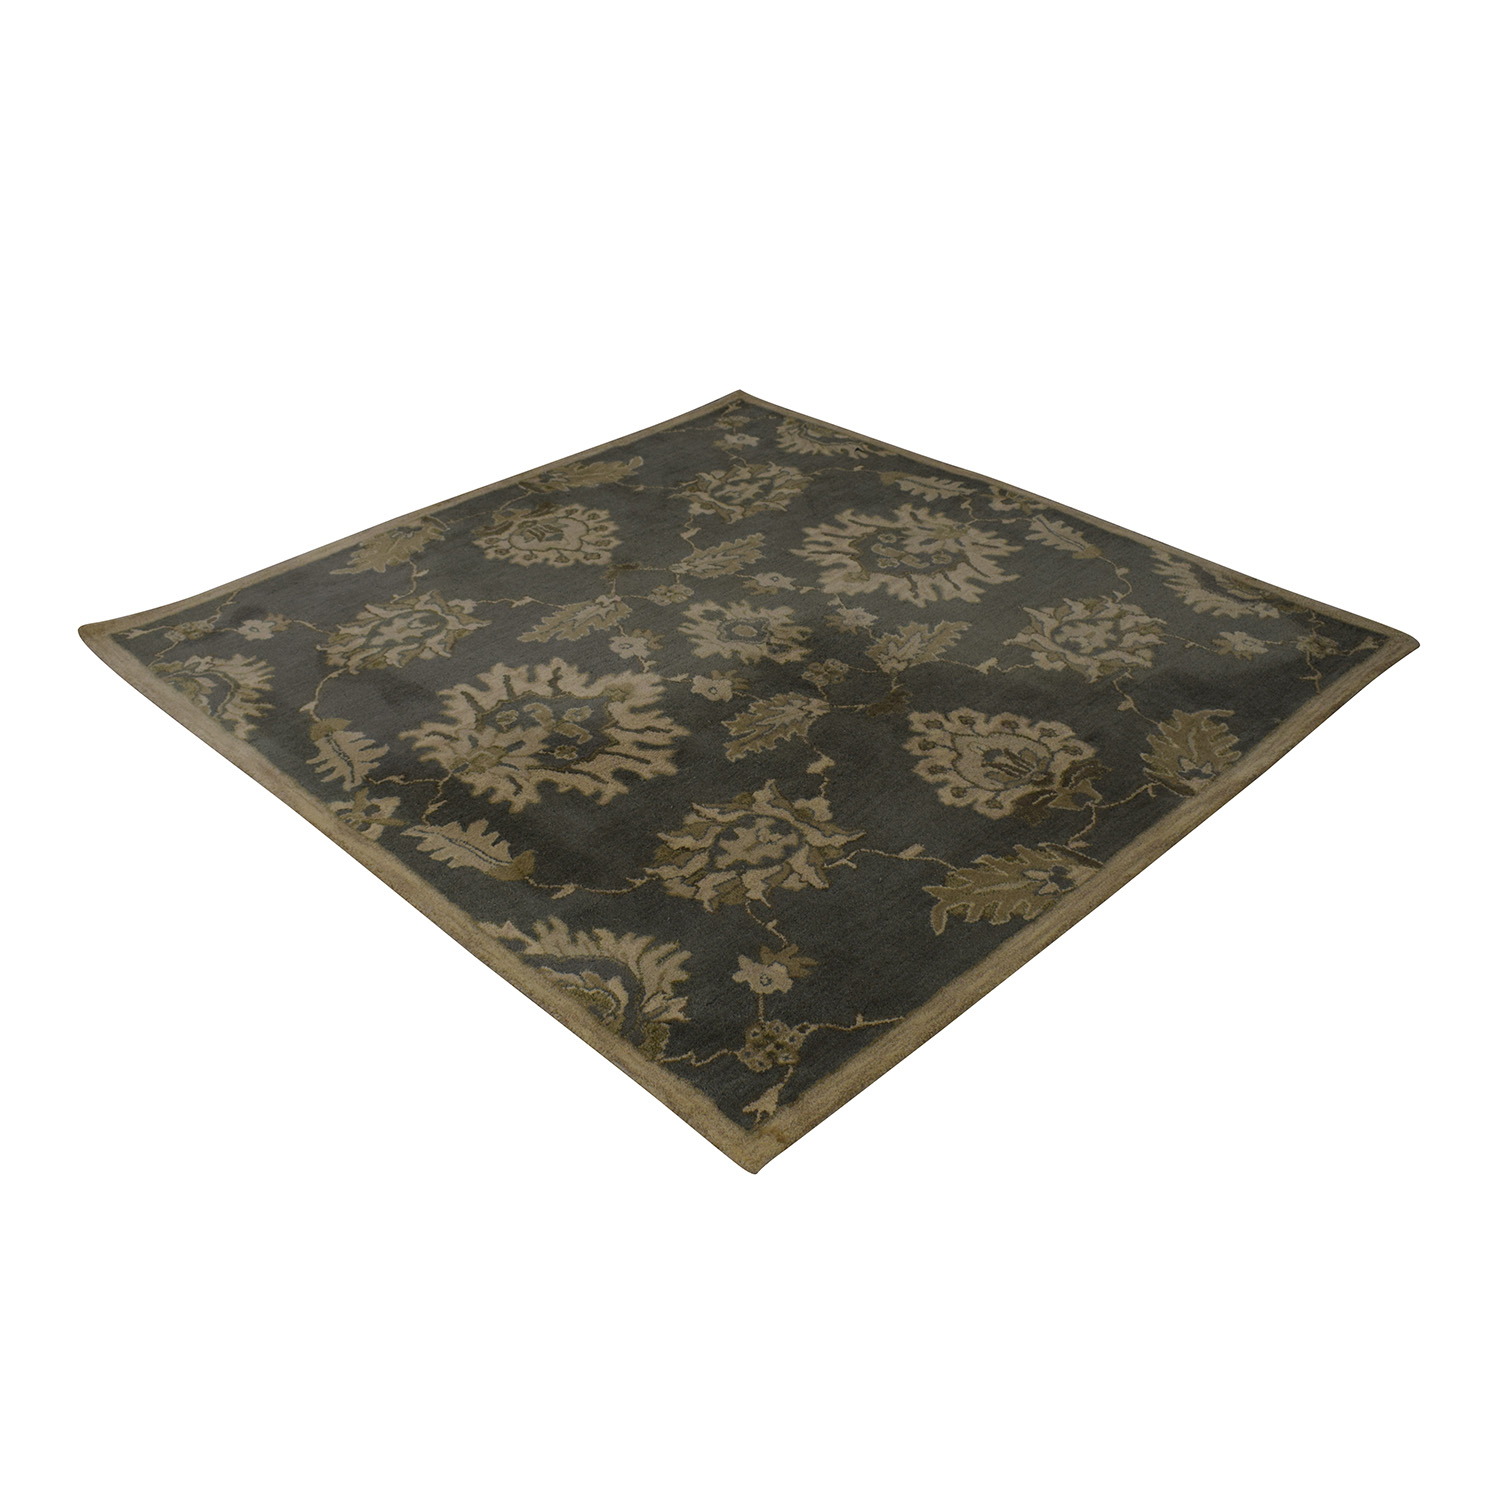 Surya Surya Basset Caesar Grey and Beige Rug coupon